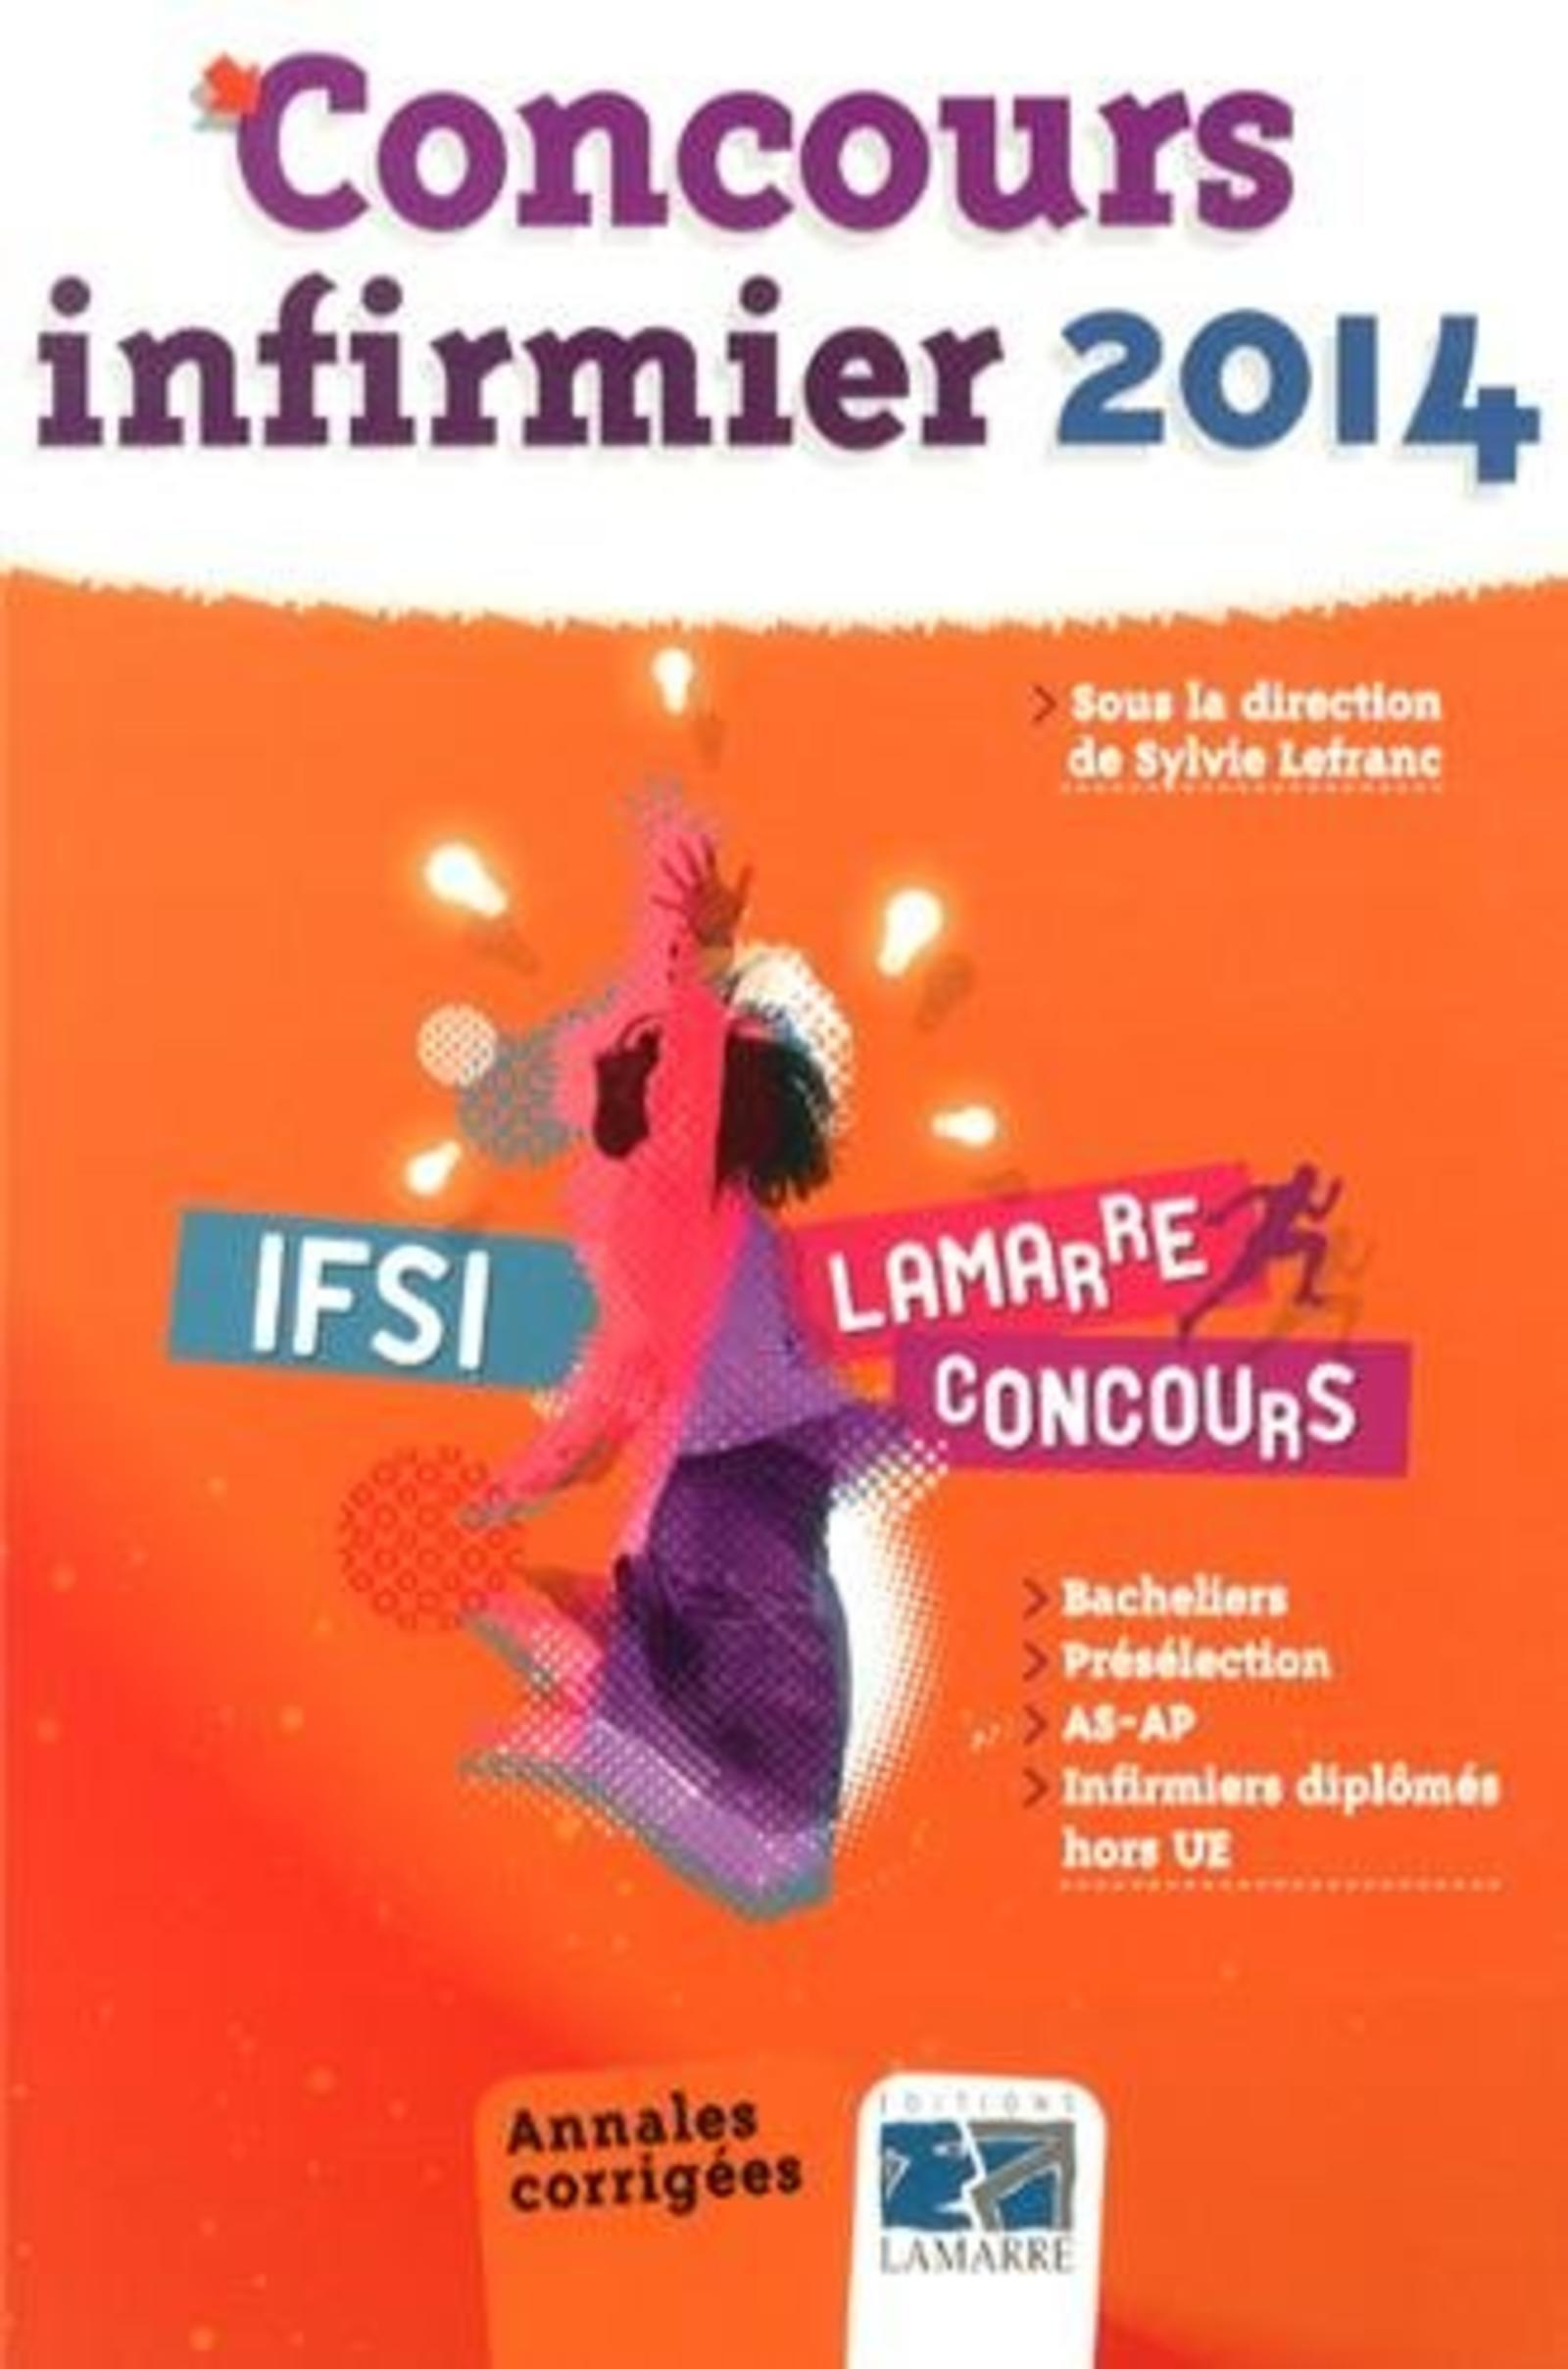 PACK CONCOURS INFIRMIER 2013 2014 - ANNALES CORRIGEES